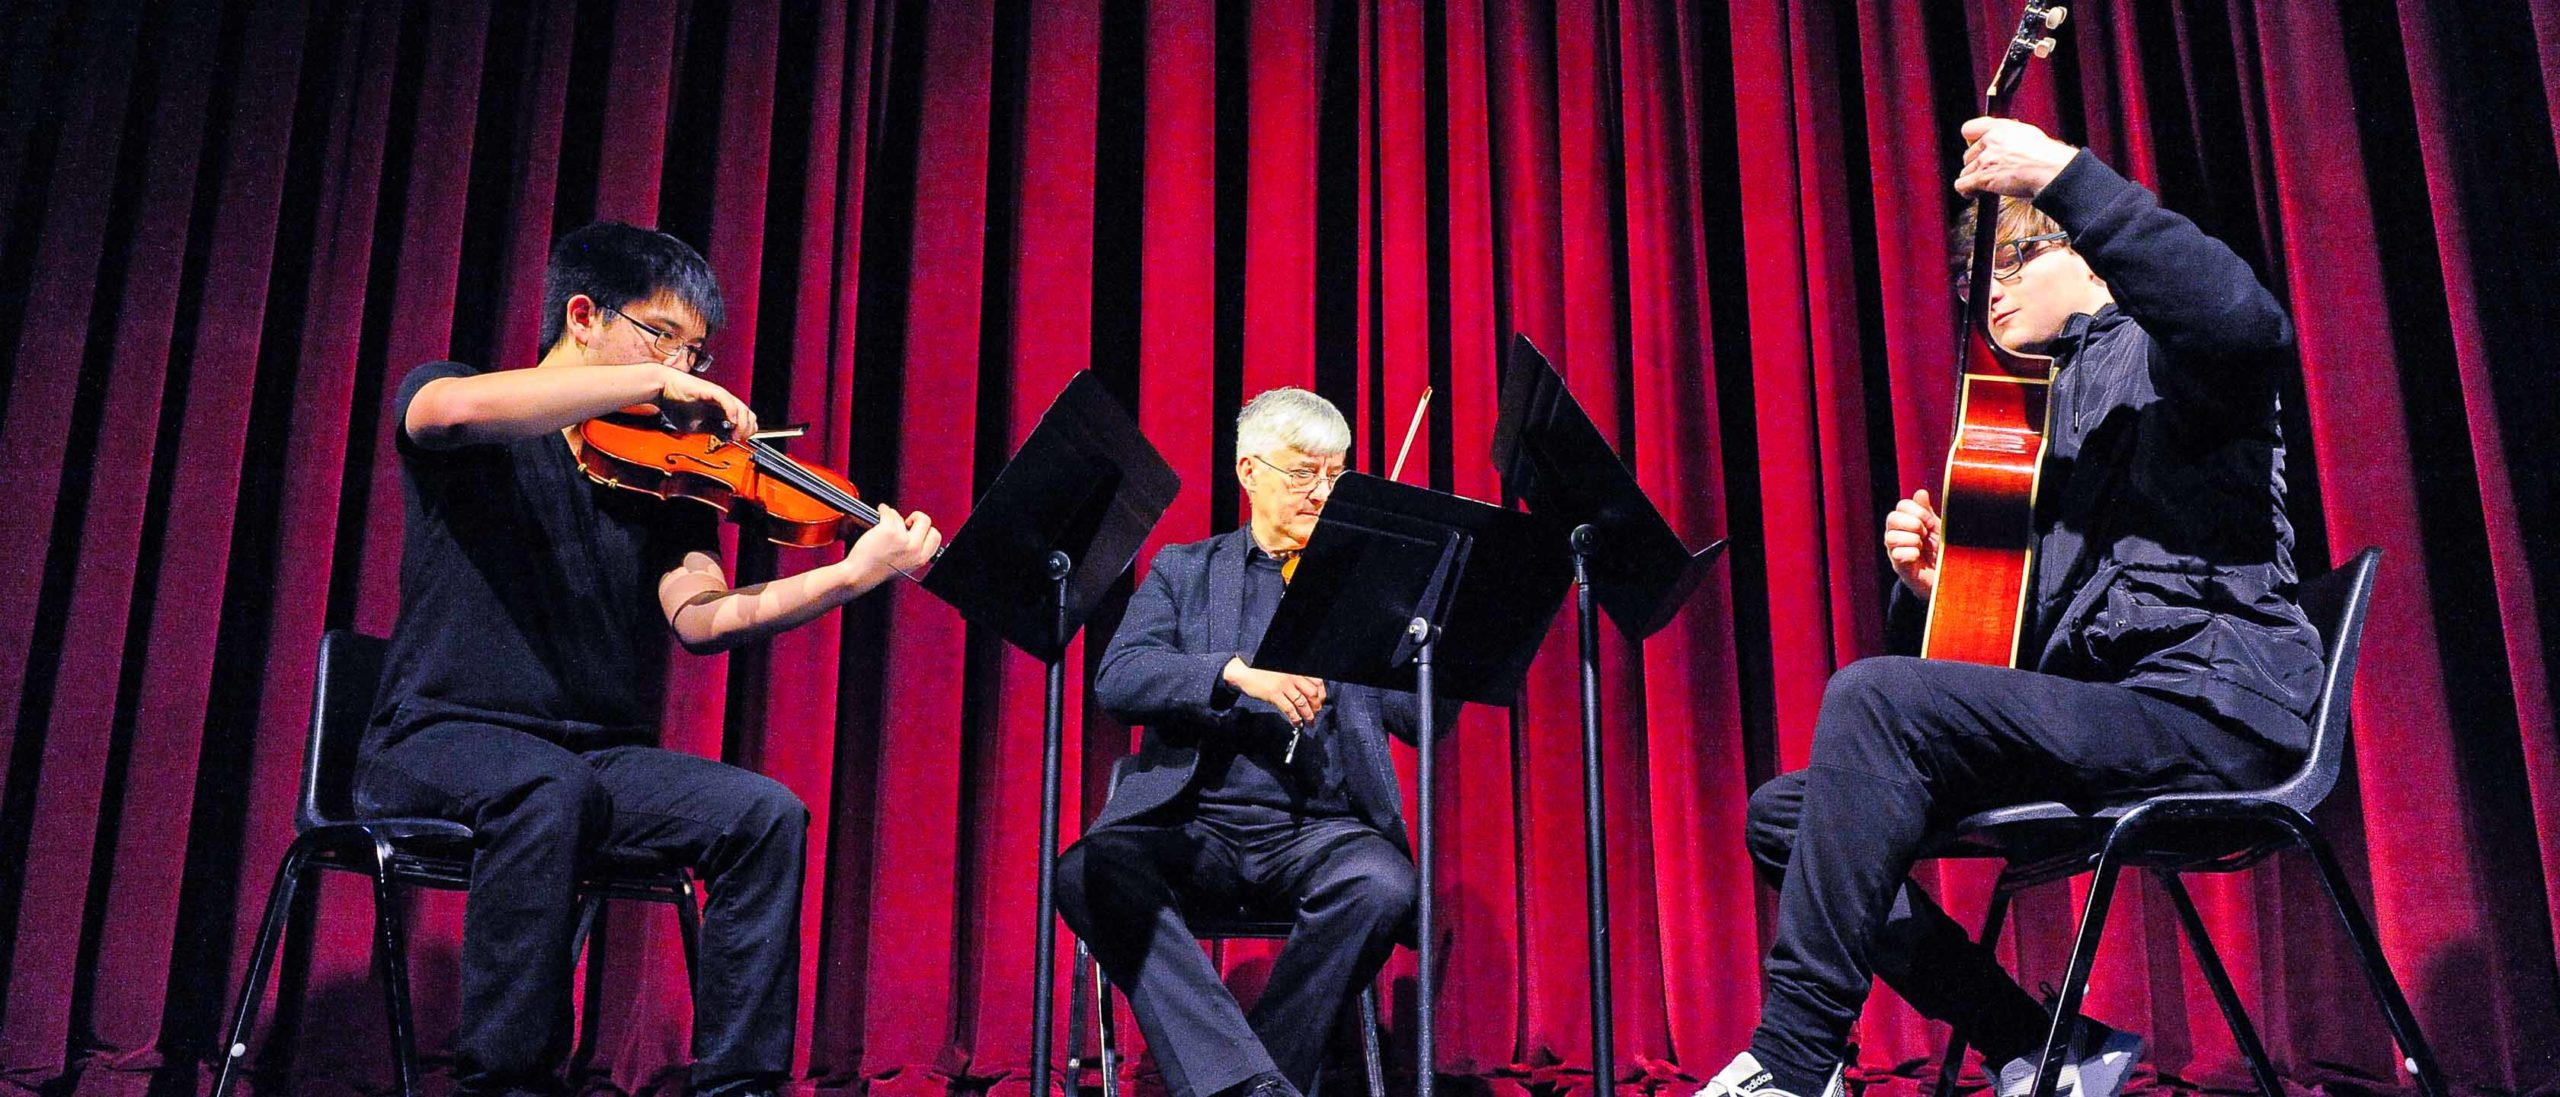 Two students an a faculty member playing string instruments on stage